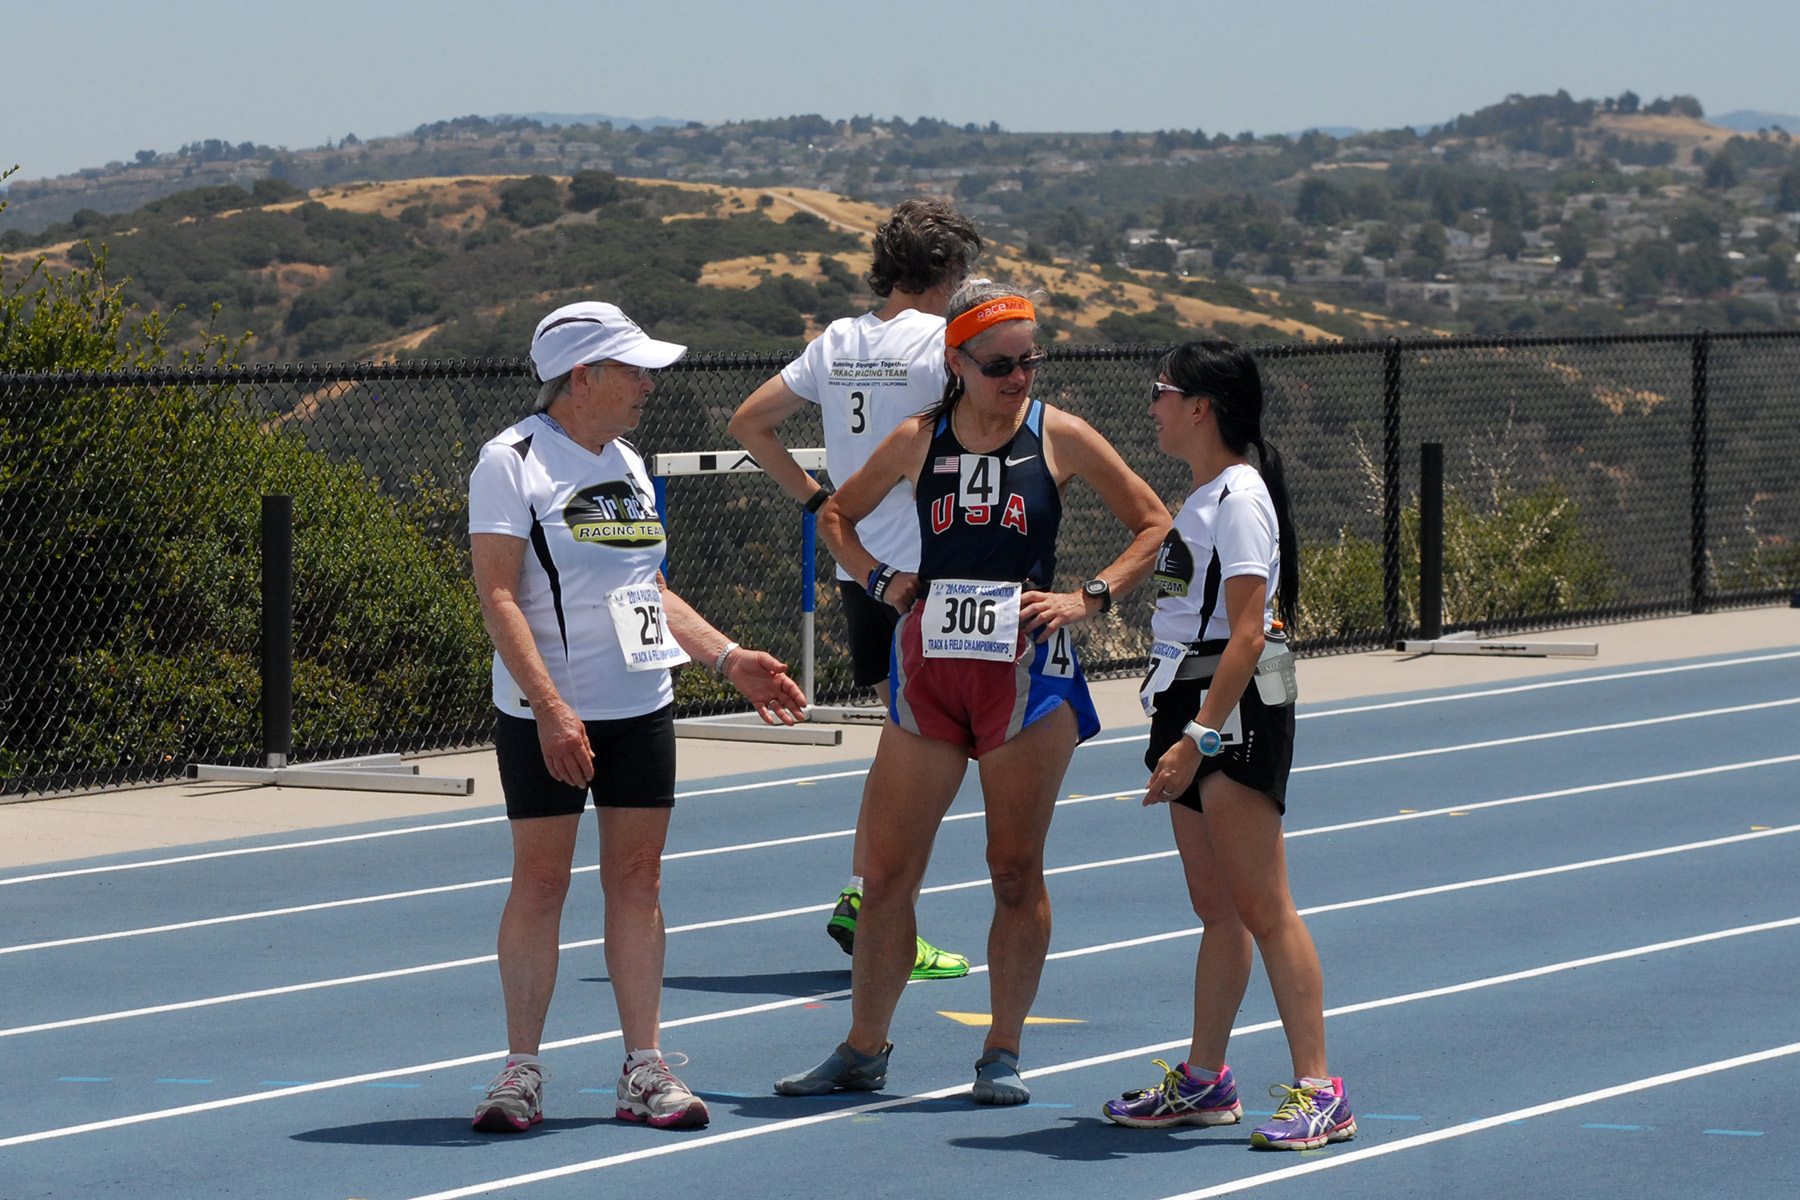 masters track and field 2014 meet results